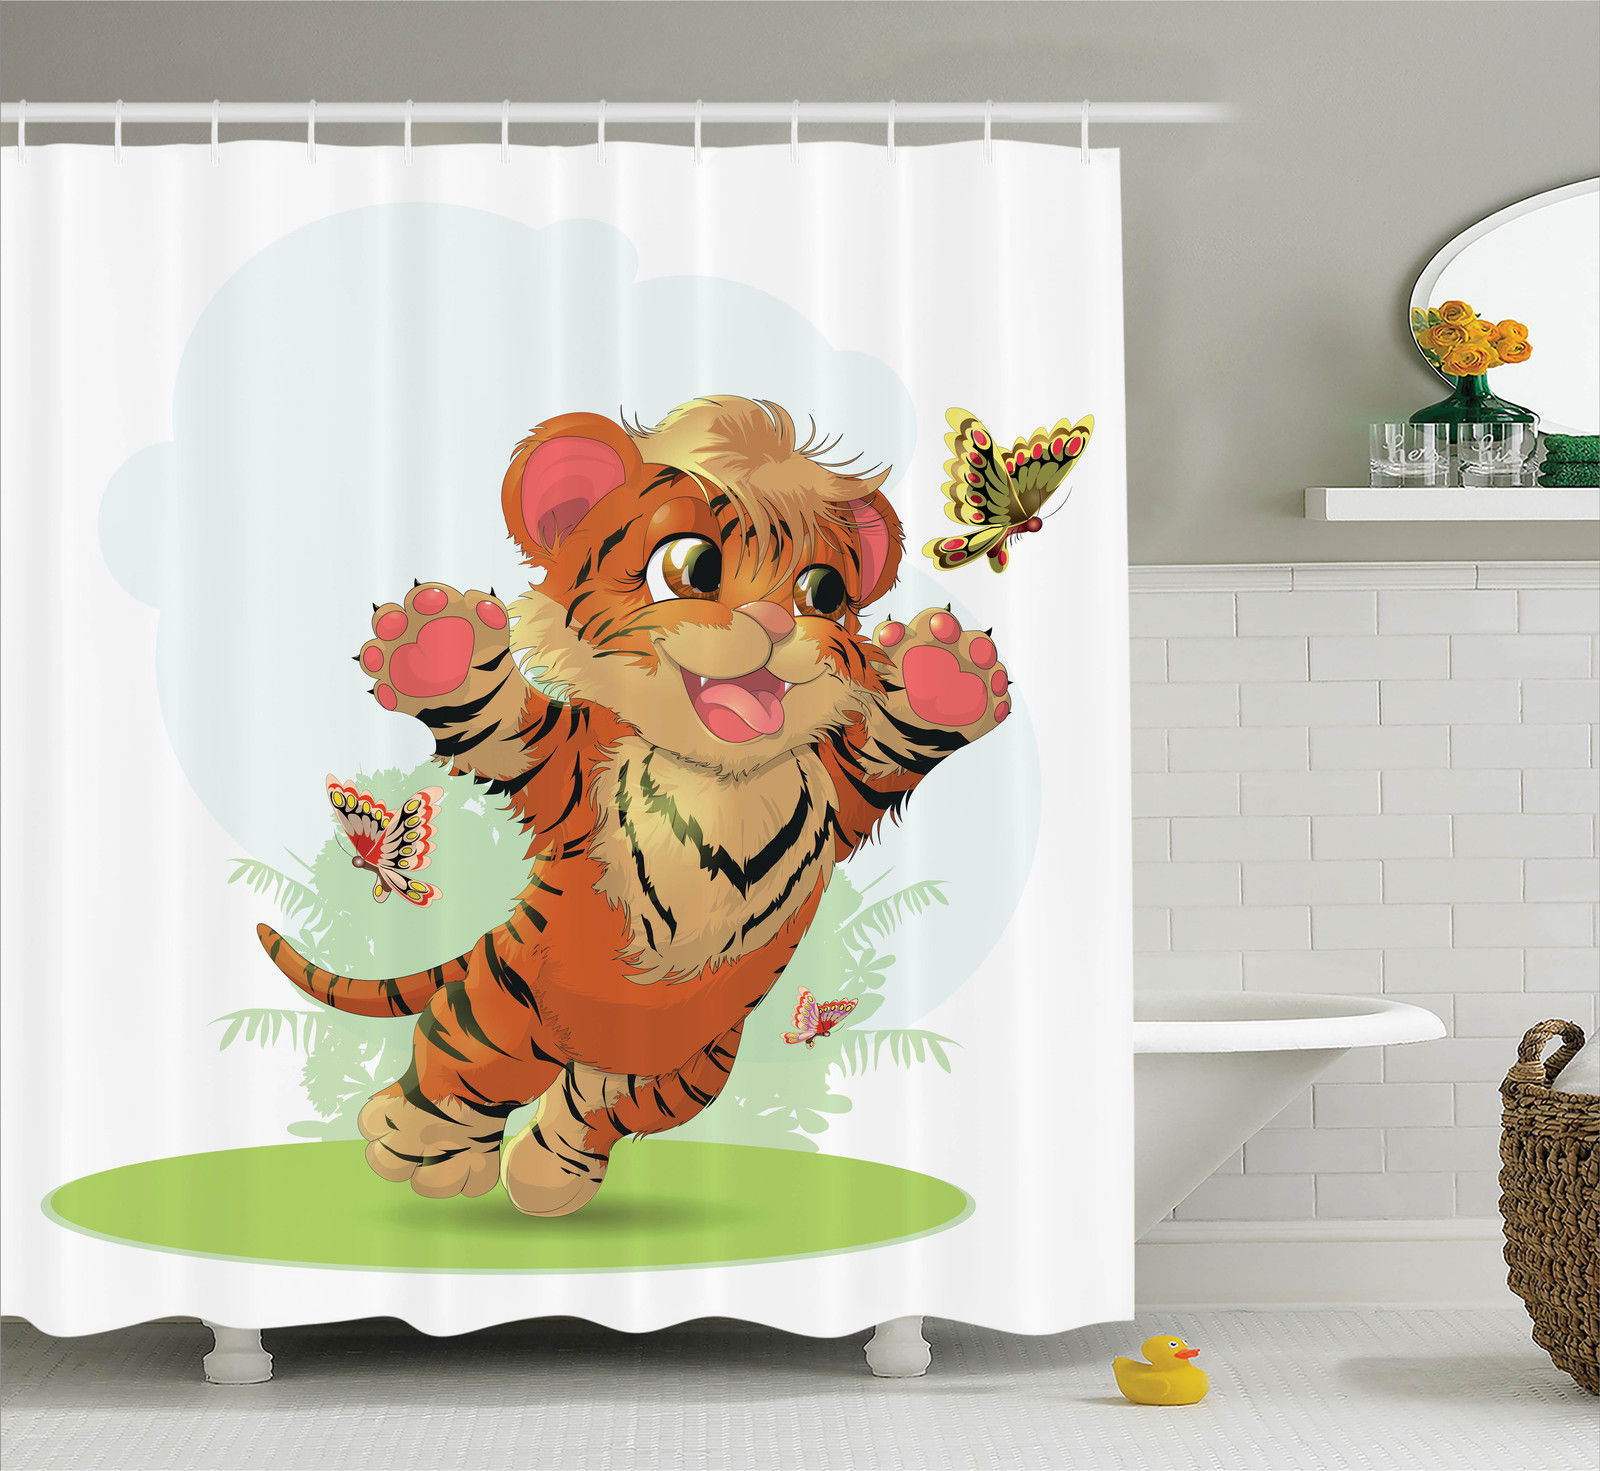 Cartoon Decor  Little Cub Playing With Butterflies In The Meadow Joyful Lively Baby Tiger Cat, Bathroom Accessories, 69W X 84L Inches Extra Long, By Ambesonne